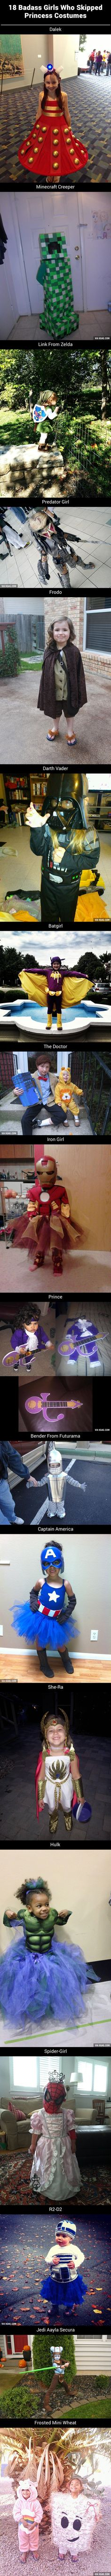 18 Badass Girls Who Skipped Princess Costumes @aliciailes